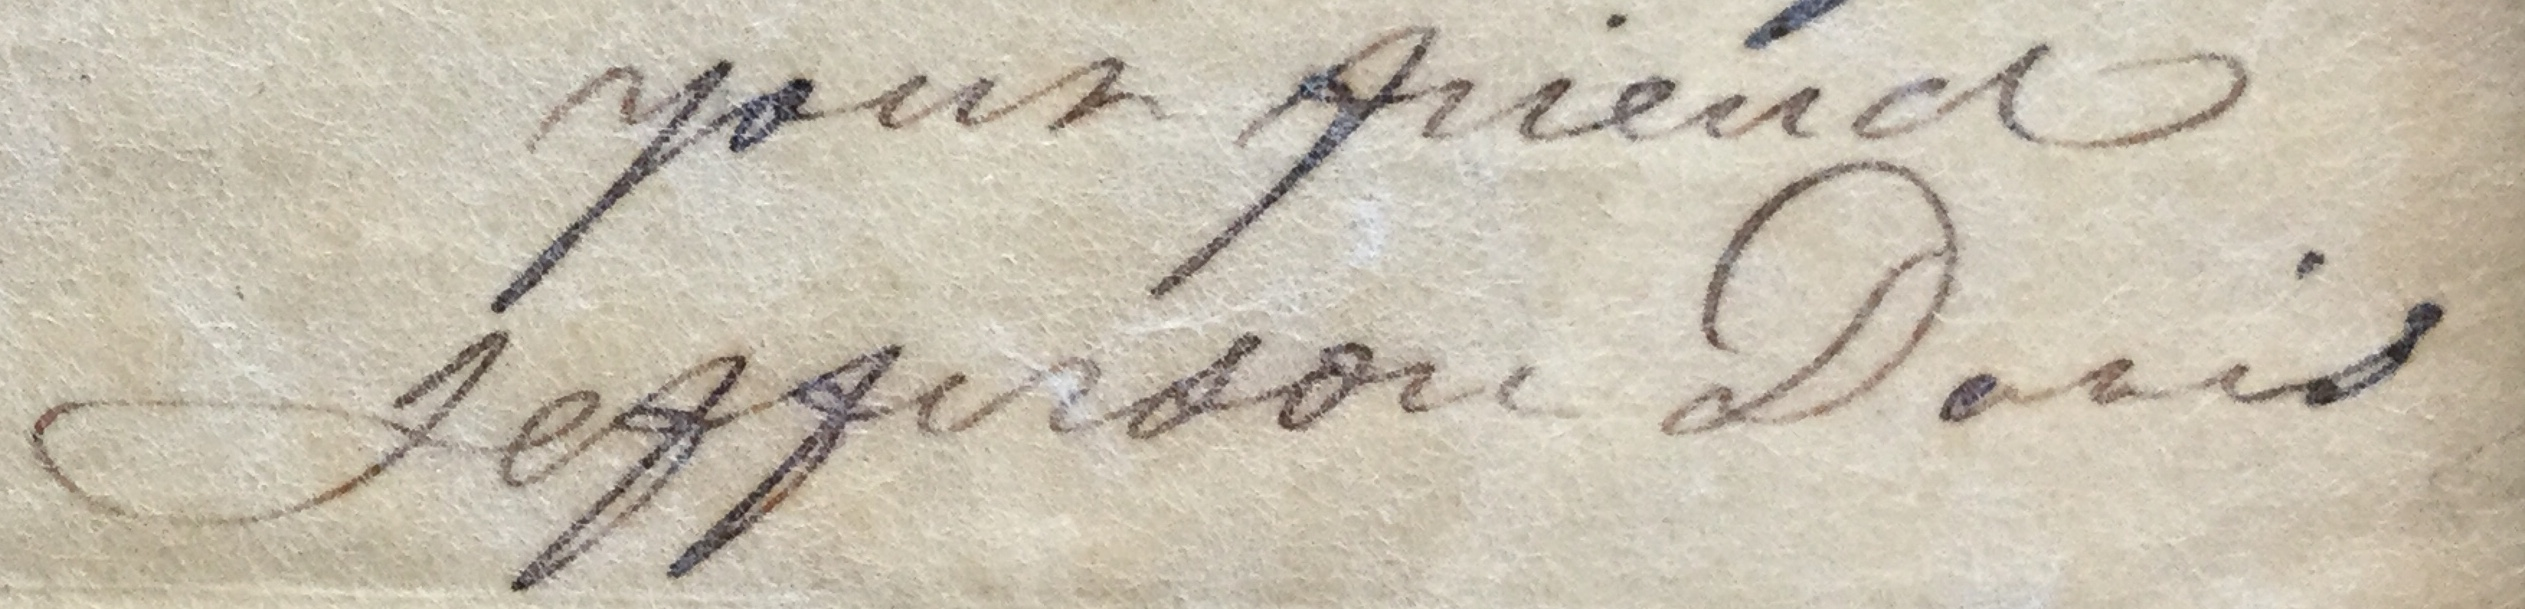 Jefferson Davis Signature